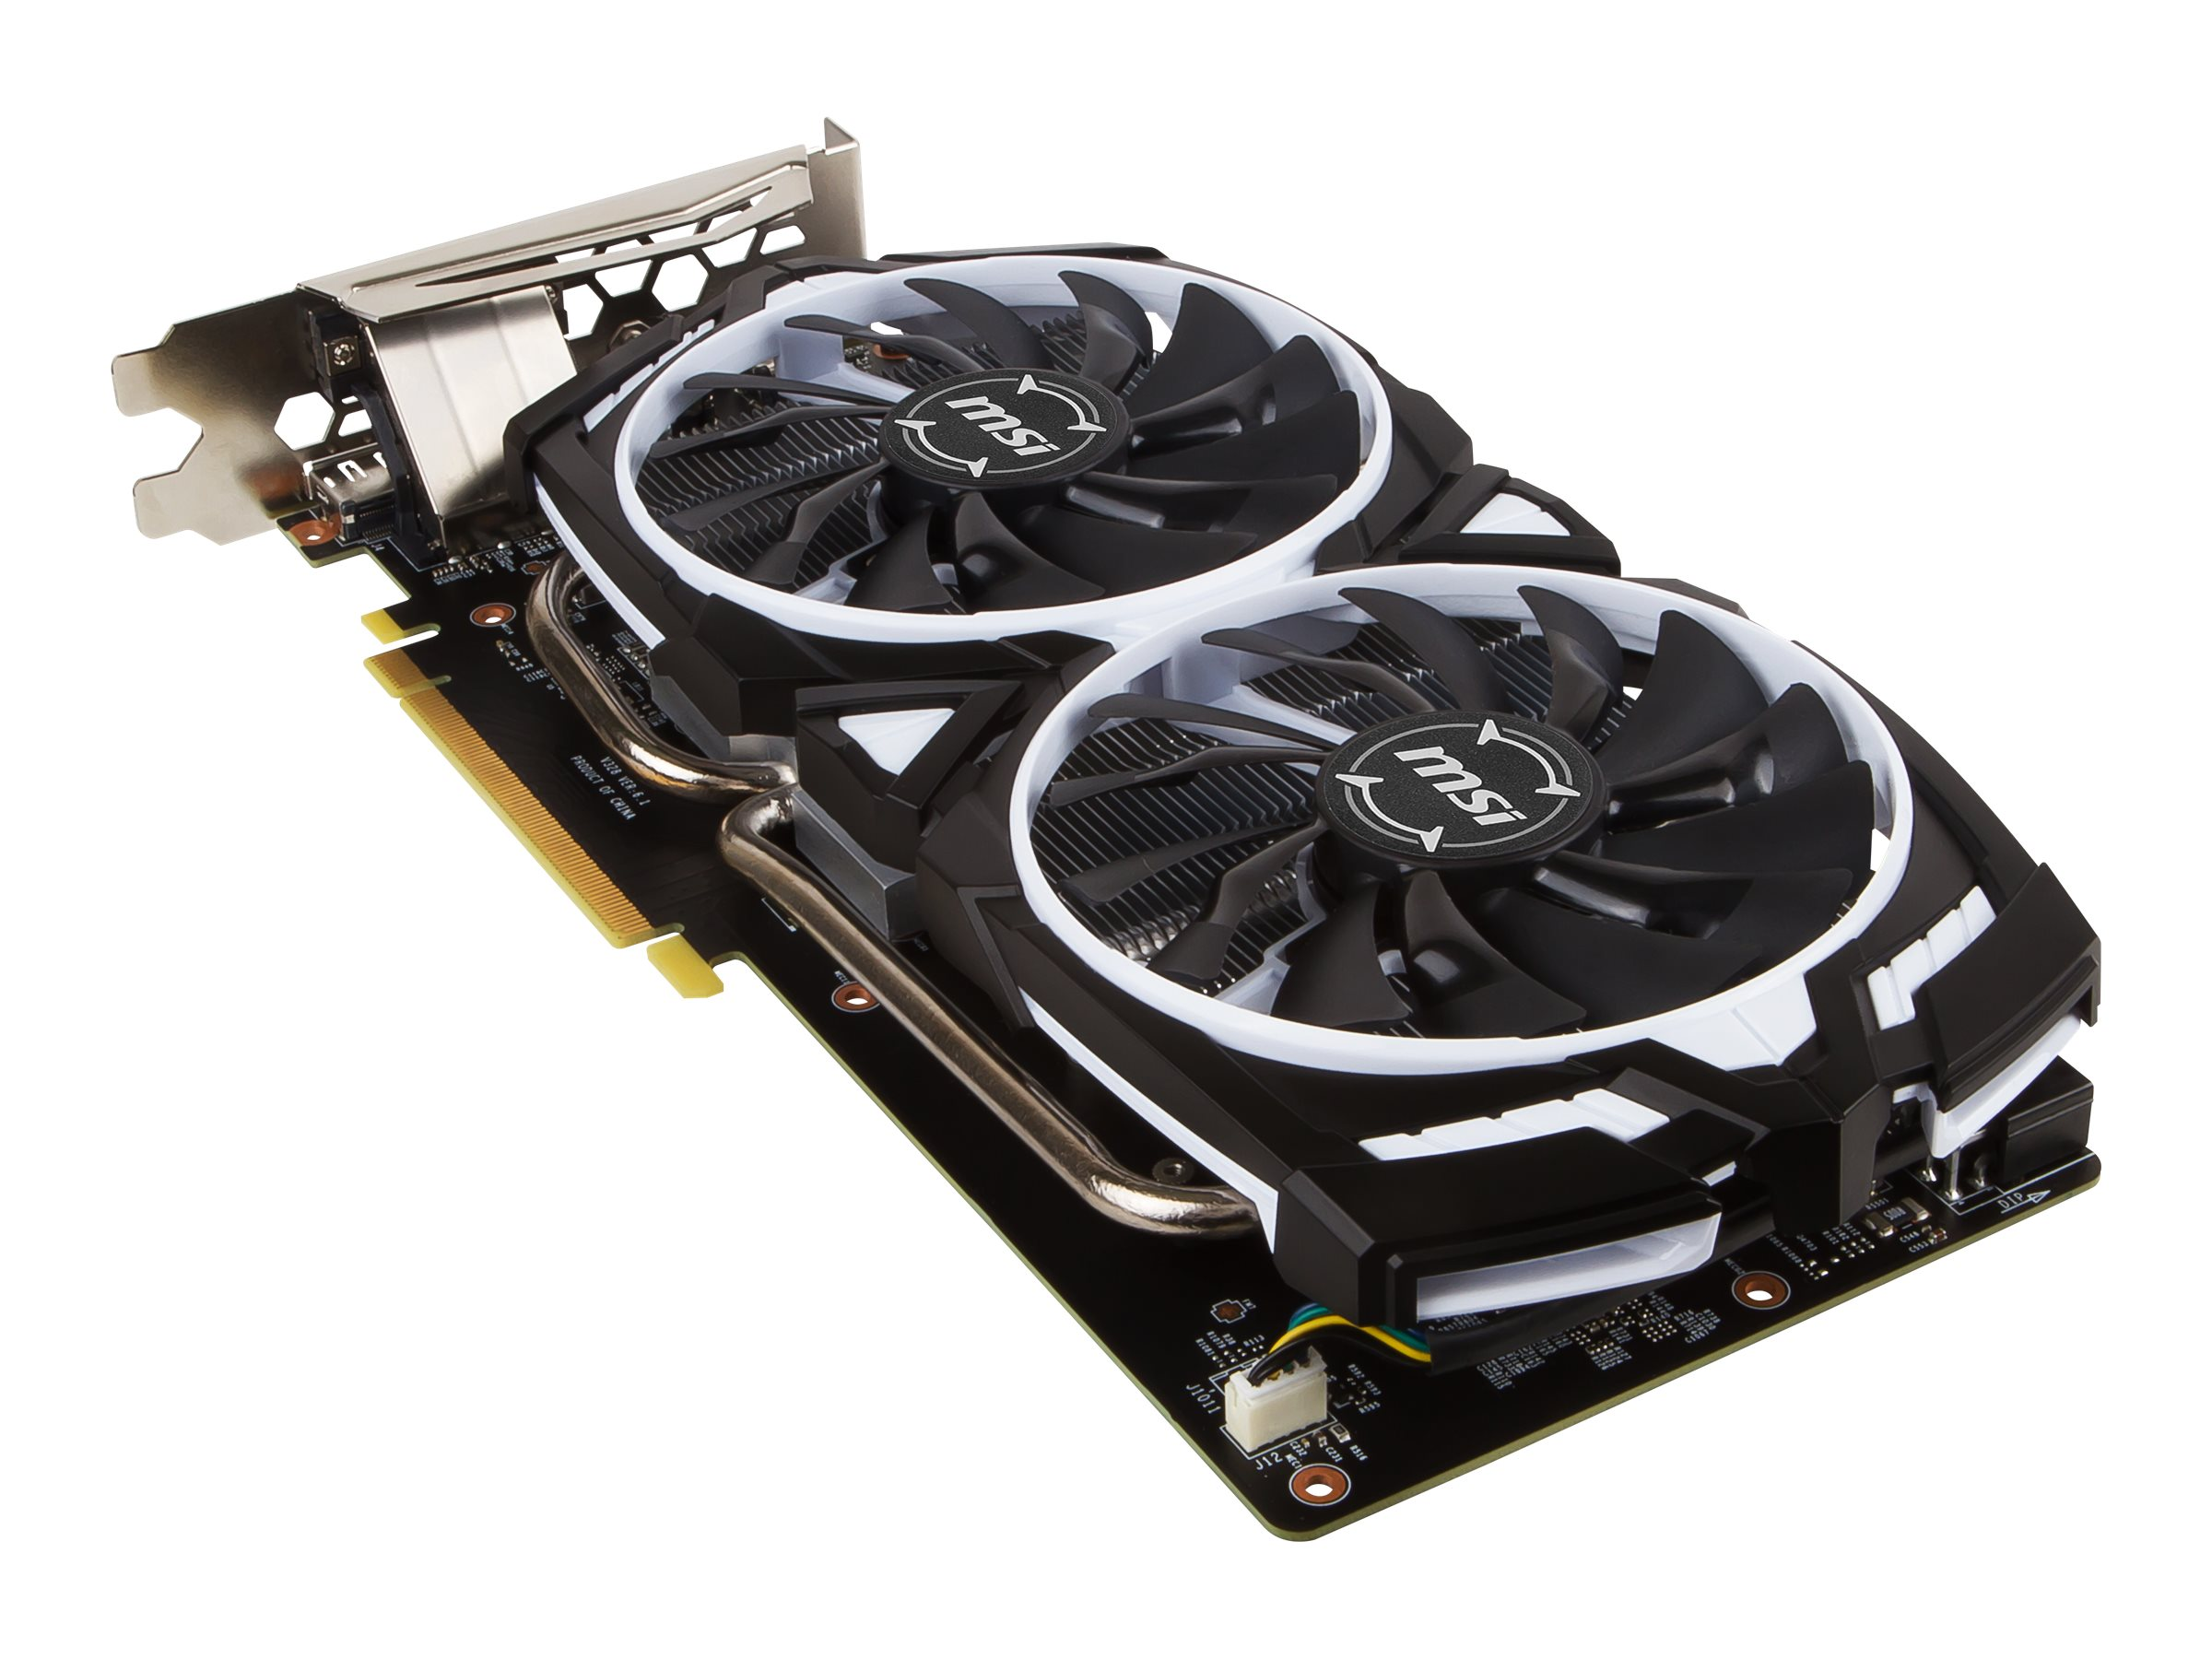 Microstar GeForce GTX 1060 Armor PCIe 3.0 x16 Overclocked Graphics Card, 6GB GDDR5